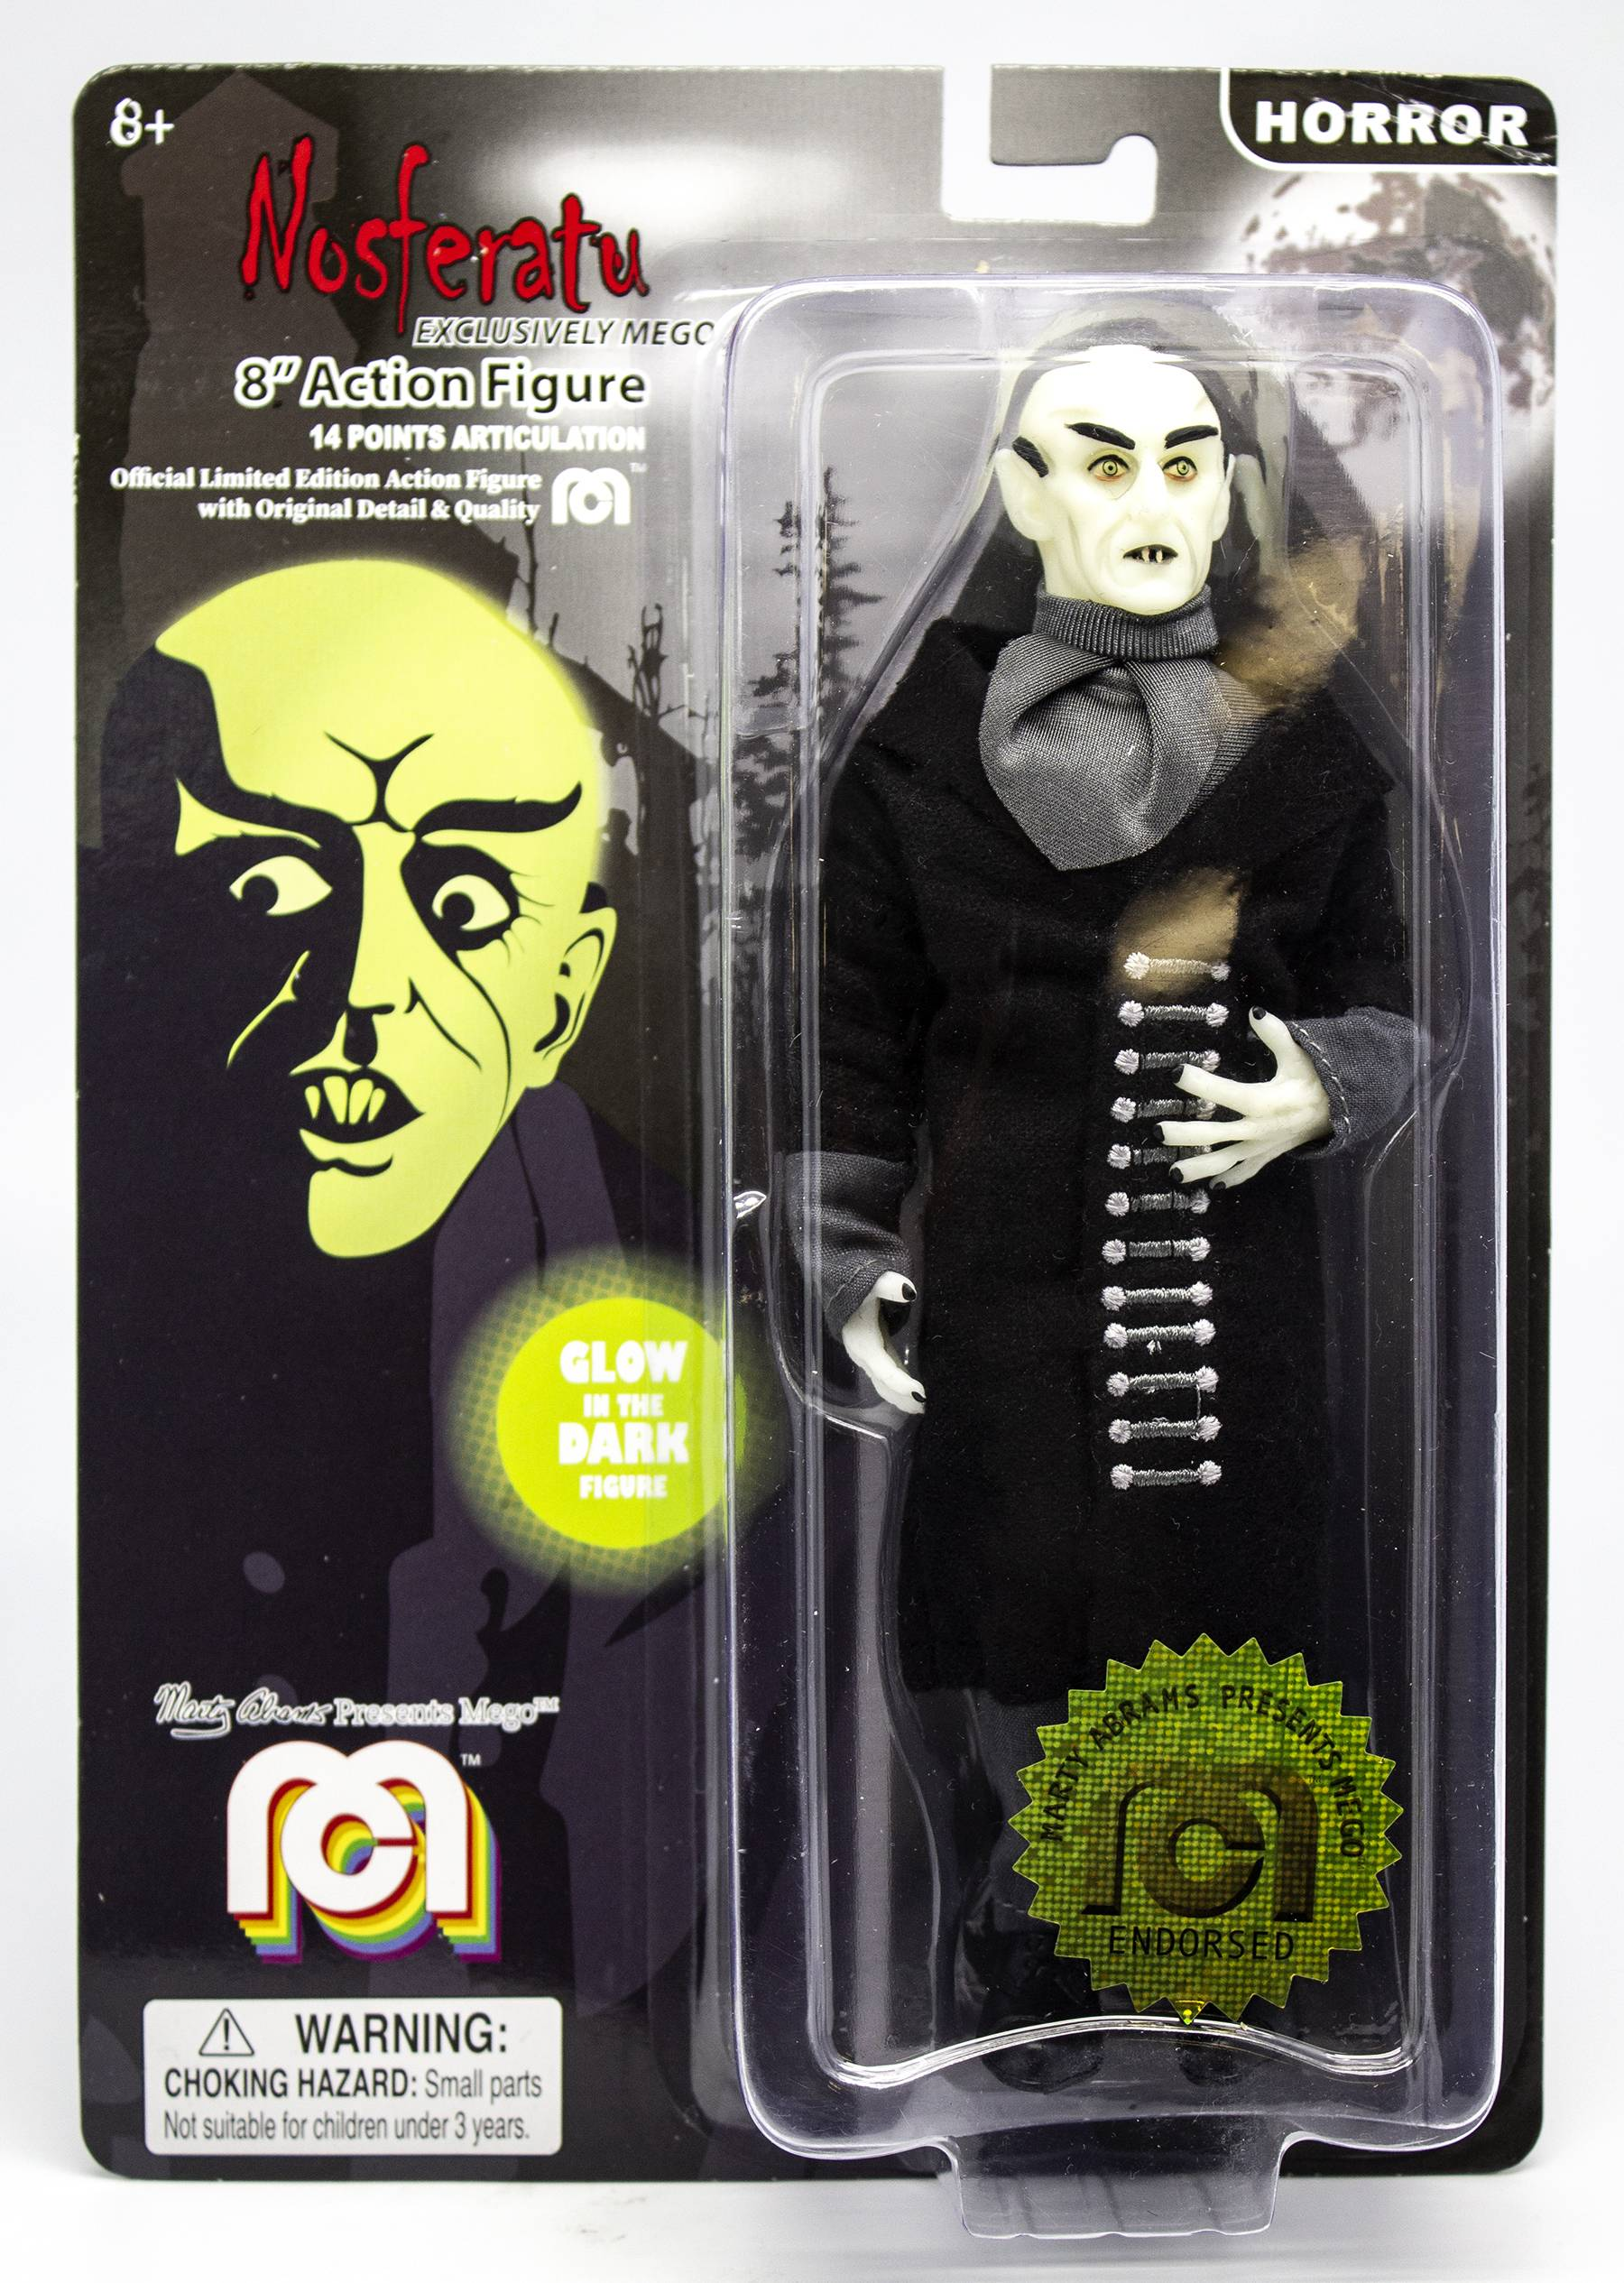 MEGO HORROR WAVE 6 NOSFERATU GID 8IN AF